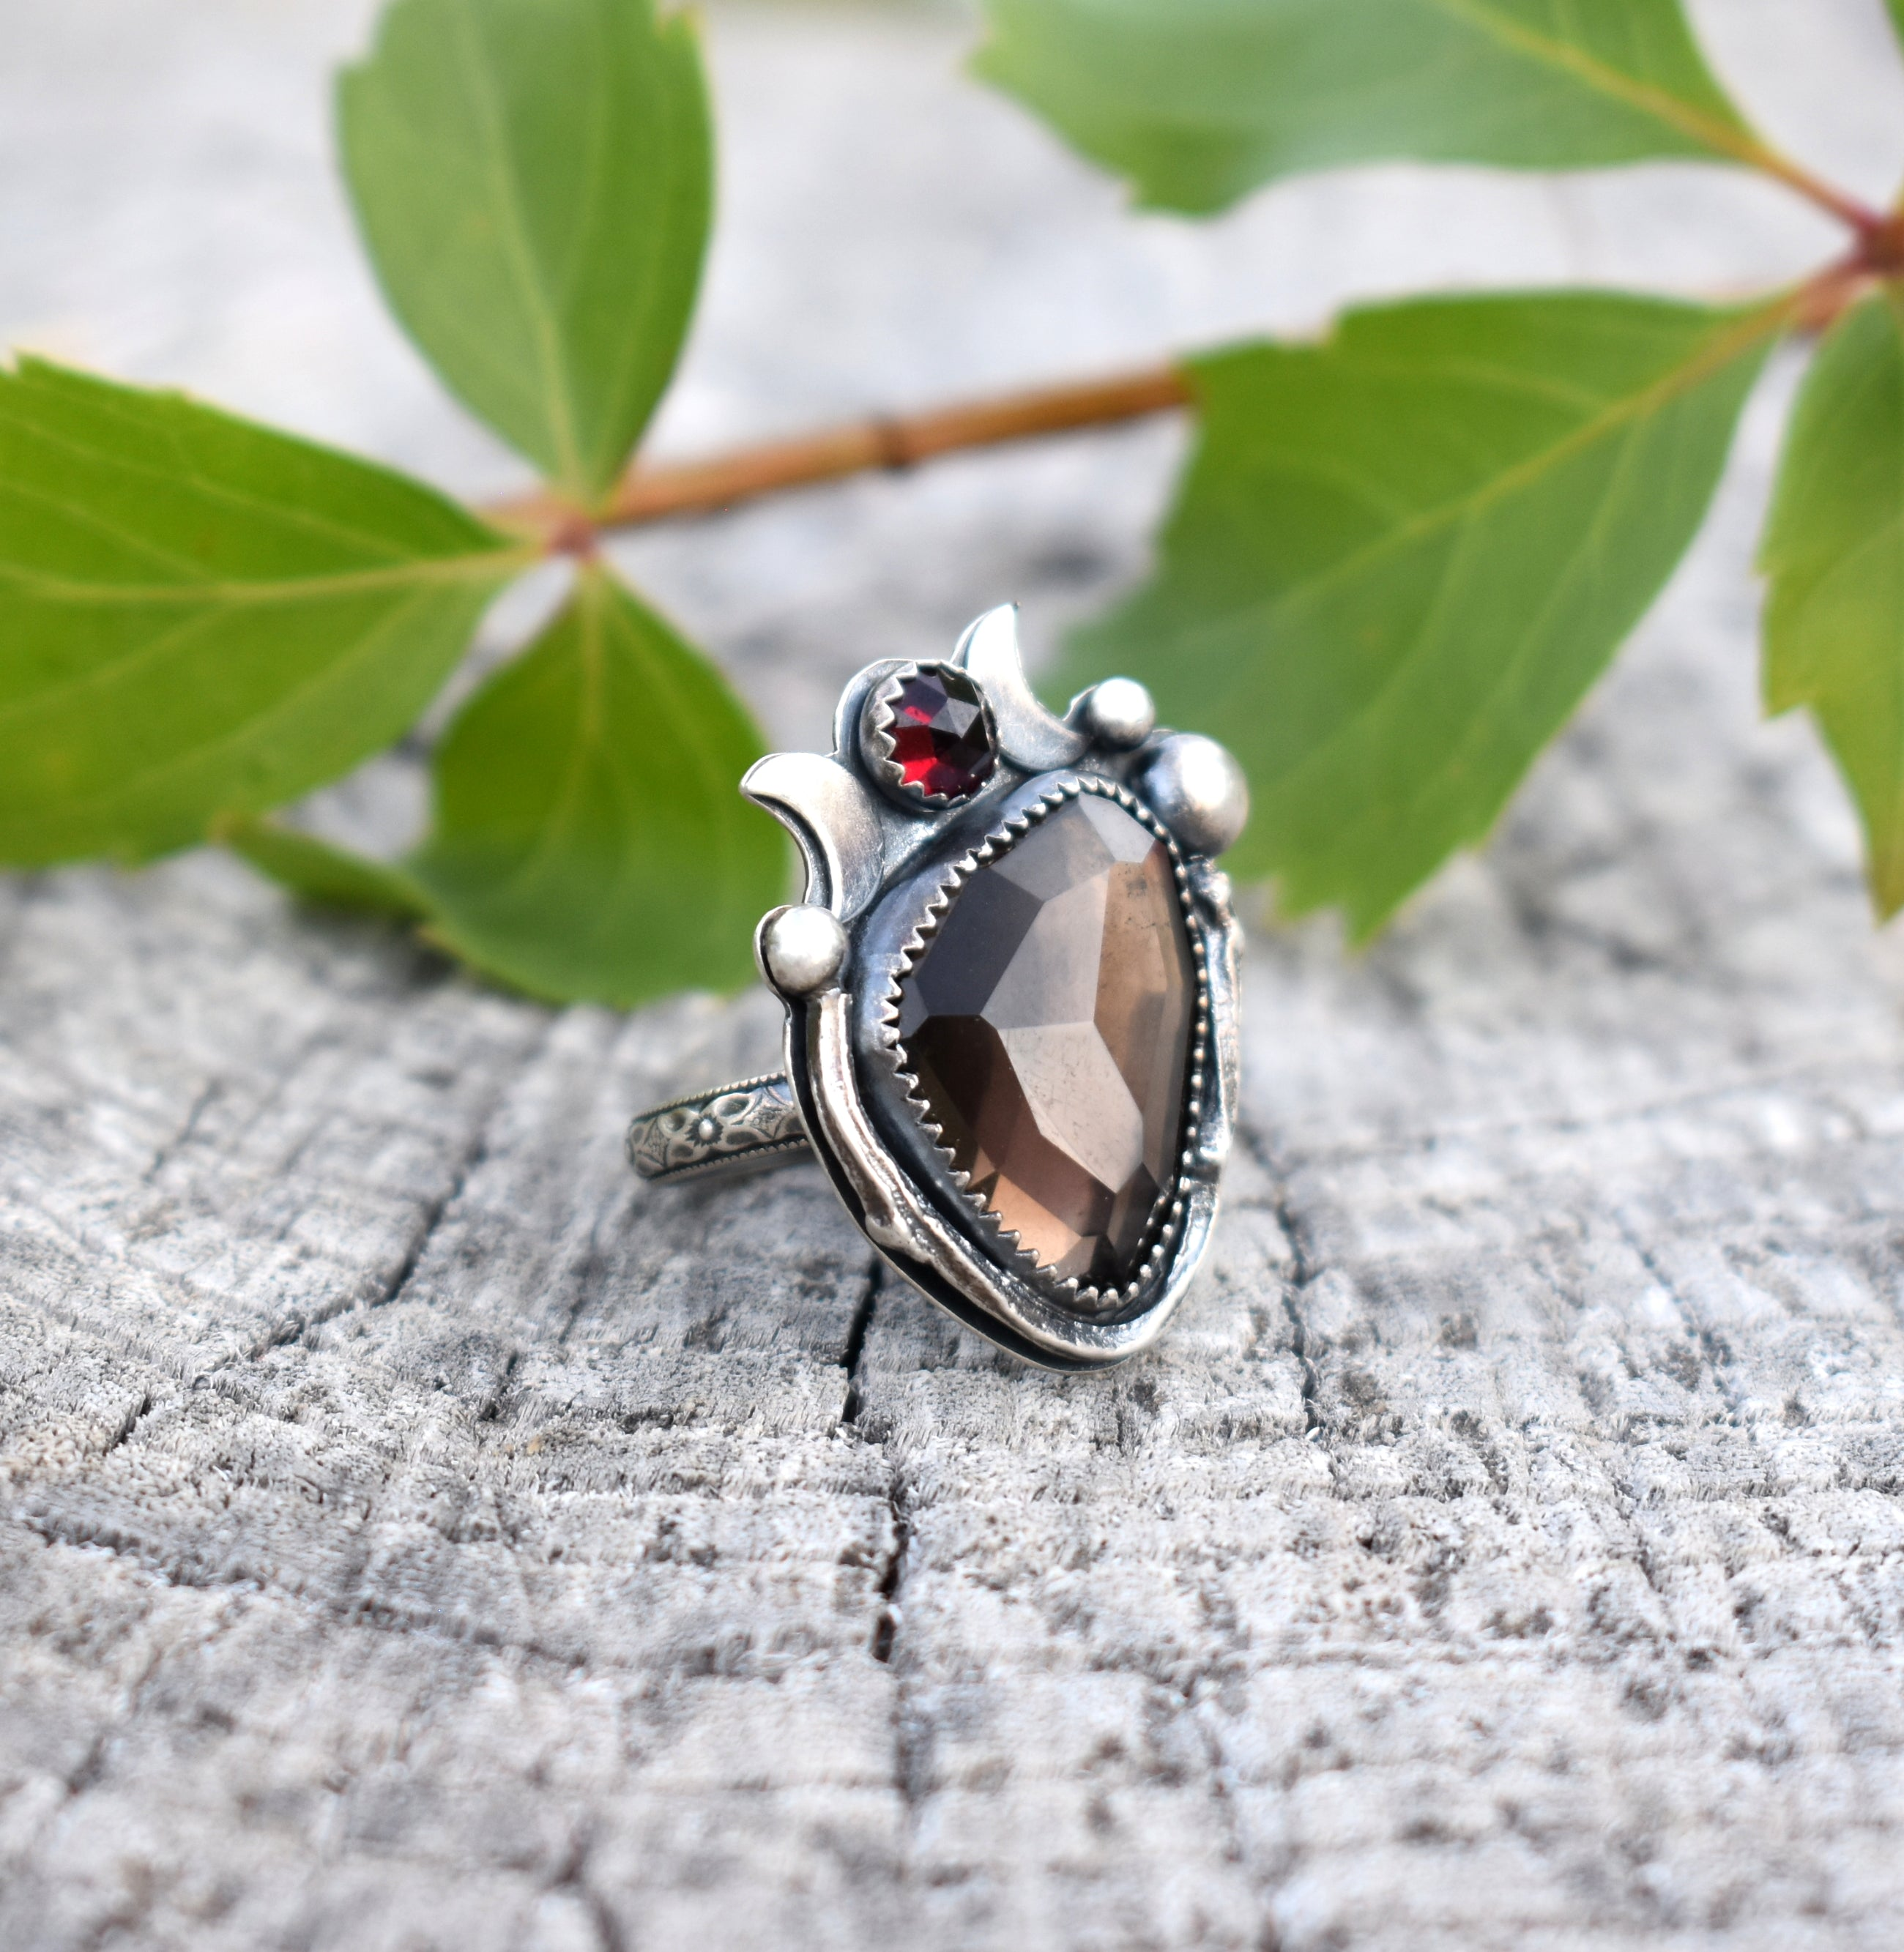 Smoky Quartz & Pyrope Garnet Ring #1 US Ring Size 6